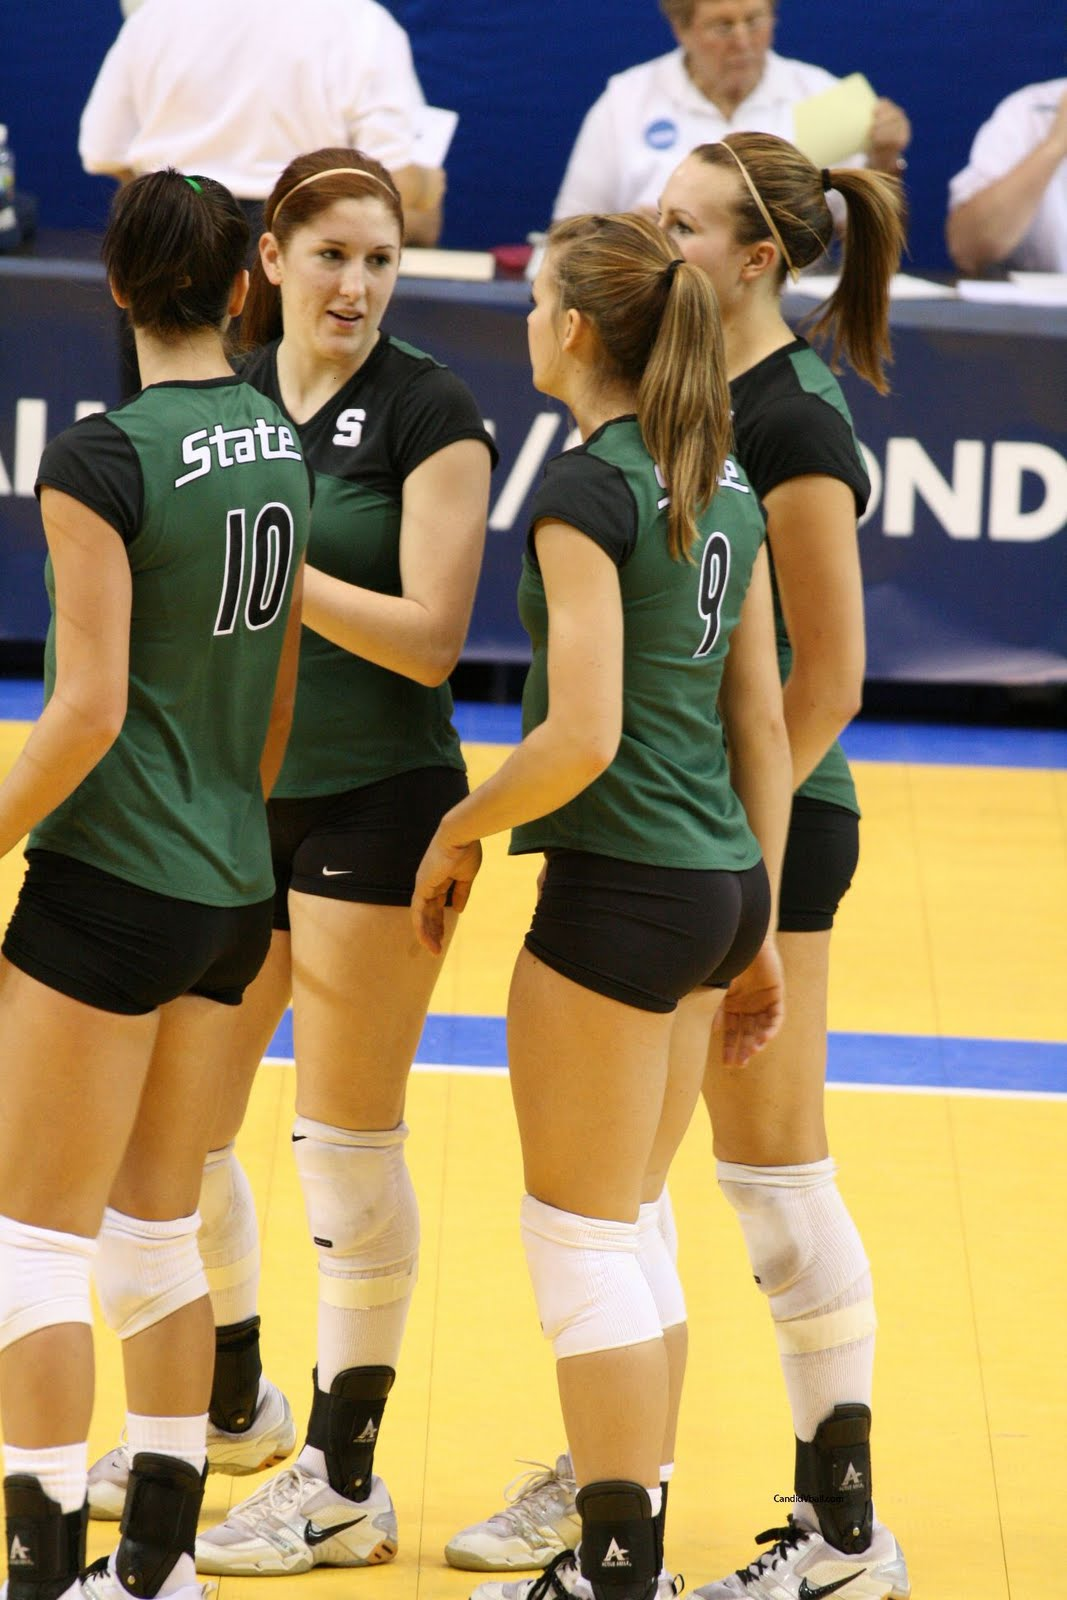 Sexy Spandex Volleyball Bottoms Gallery  Total Pro Sports-6367